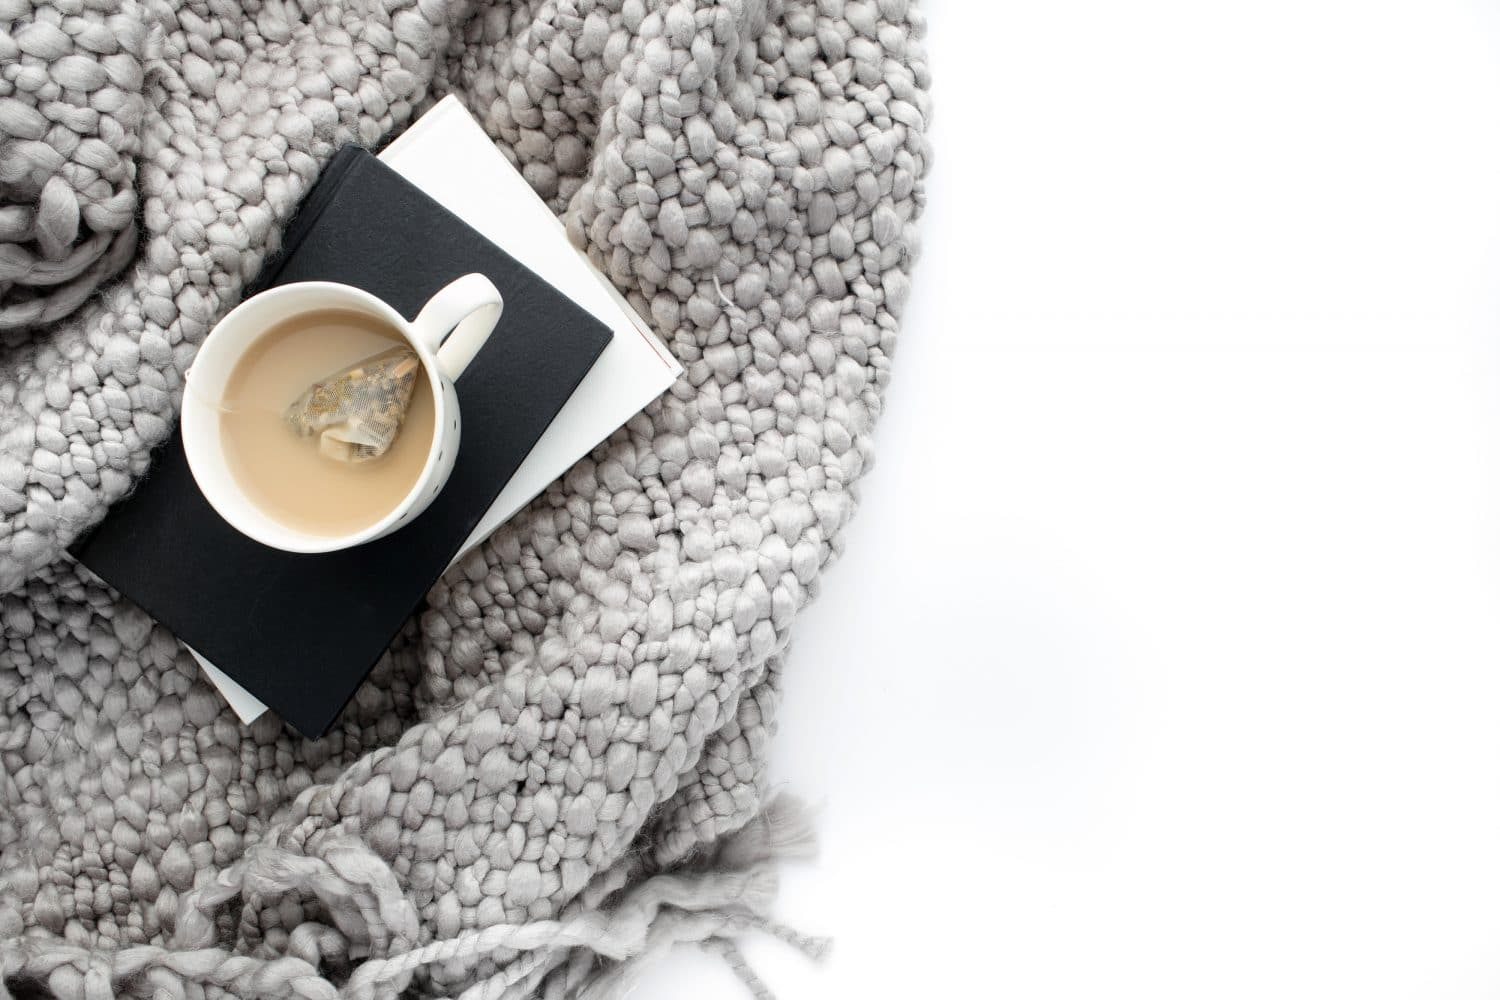 Coffe Mug, Notebook, Wool Blanket White Background